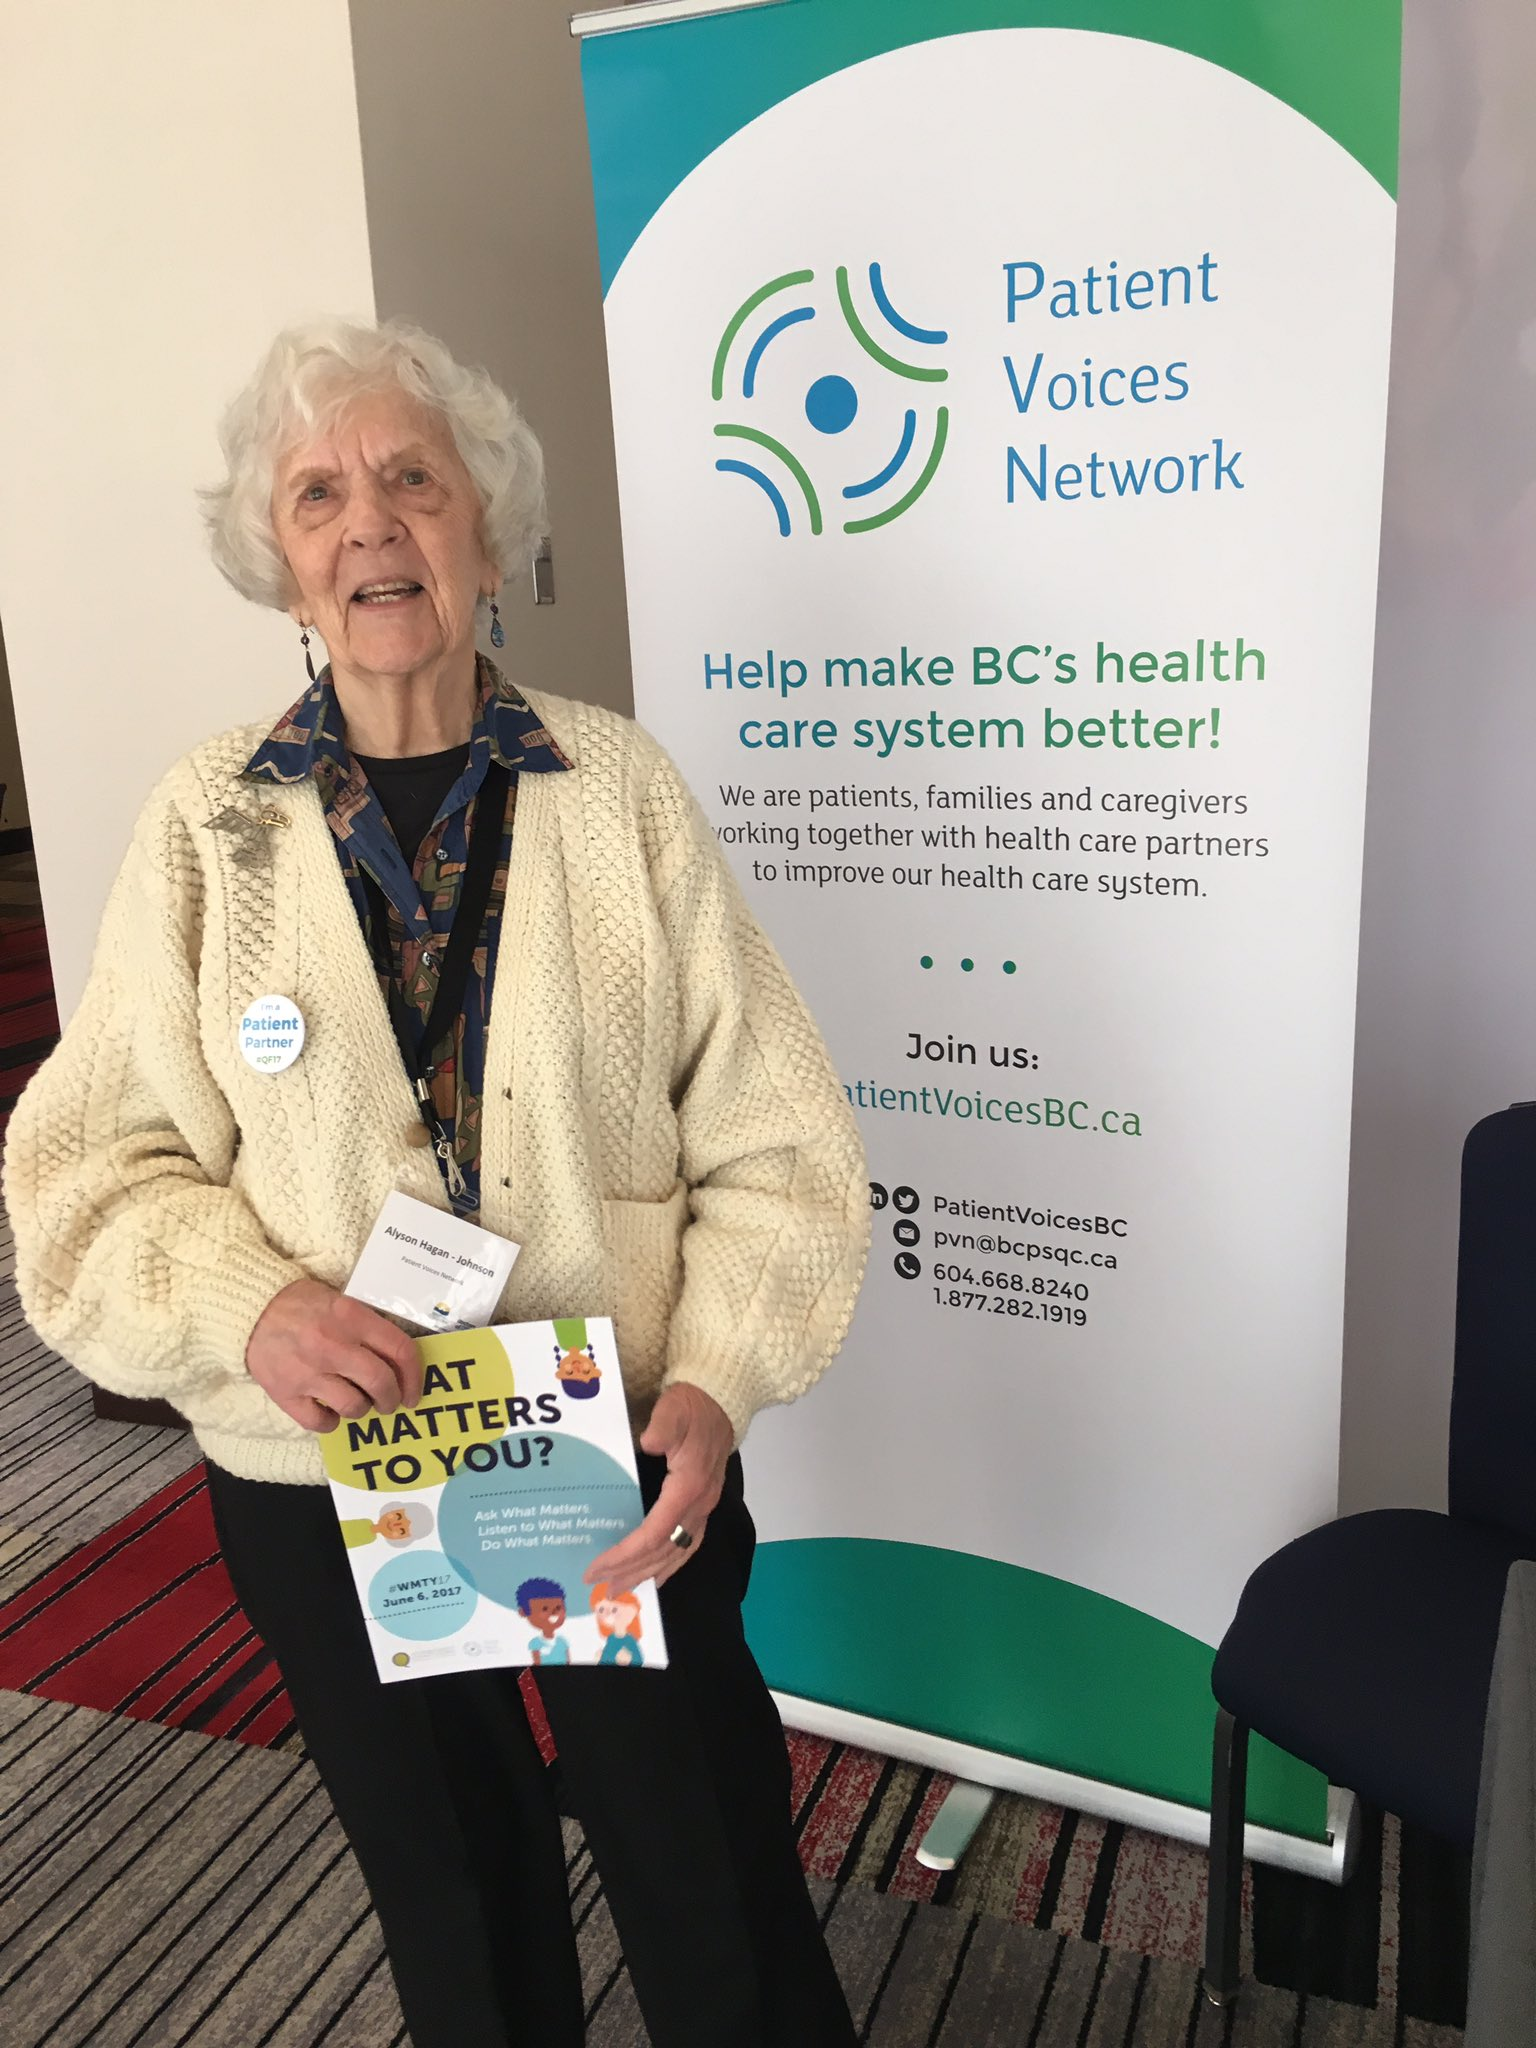 """So great to see the materials I helped with"" @PatientVoicesBC Member Alyson shows off #whatmatterstoyouday #QF17 https://t.co/pCOgOskXWd"